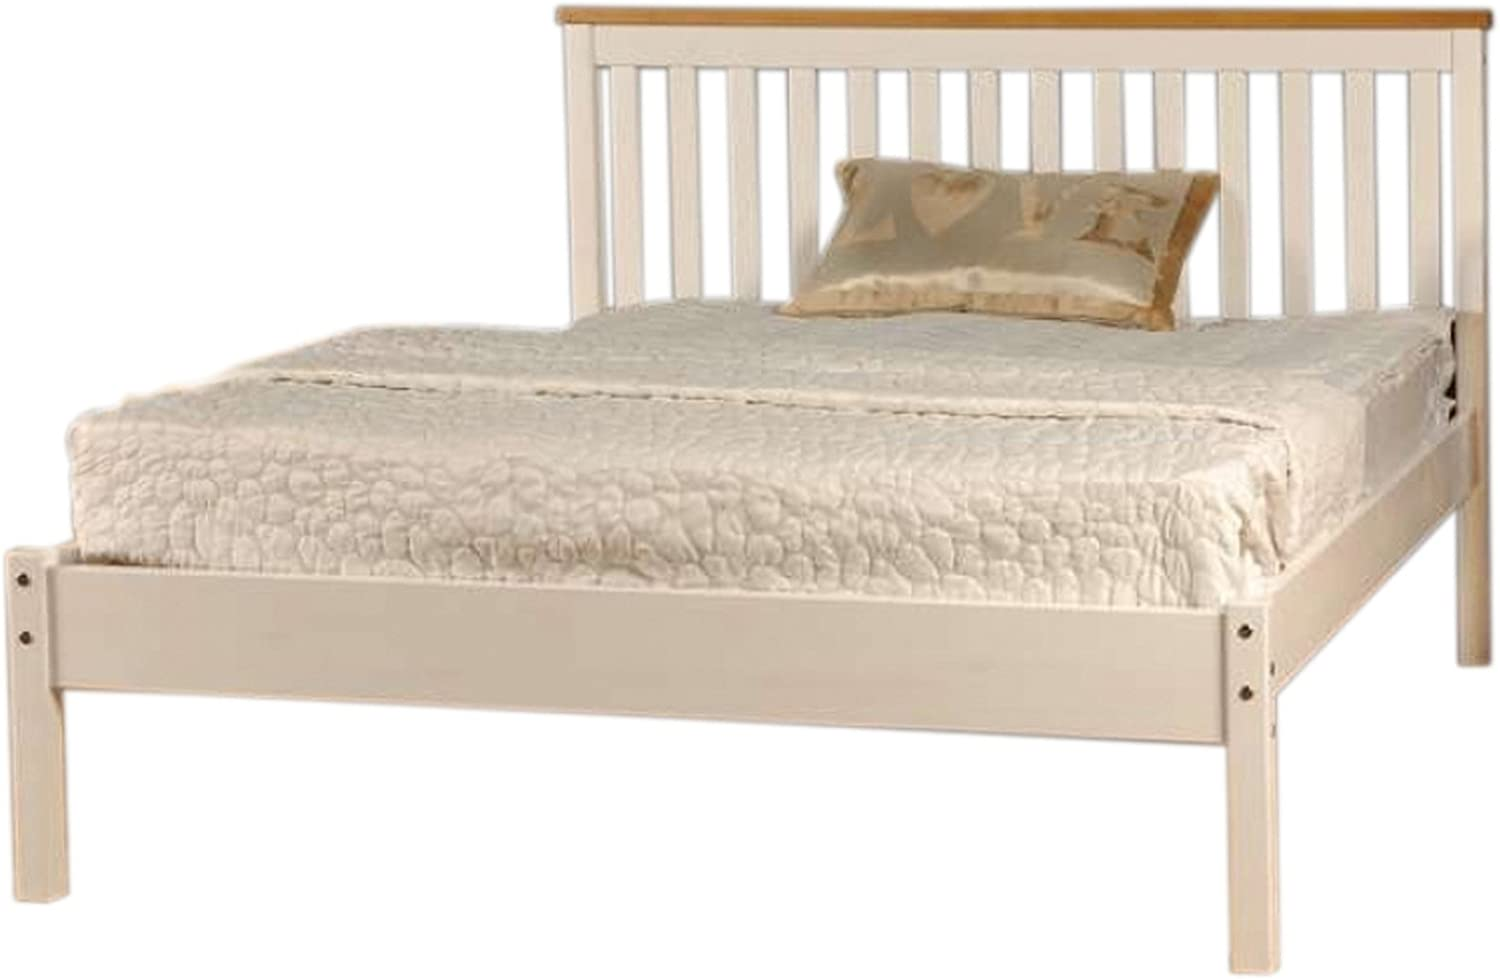 Comfy Living 5ft King Low End Solid Wooden Medina Bed Frame In White With Caramel Bar Amazon Co Uk Kitchen Home